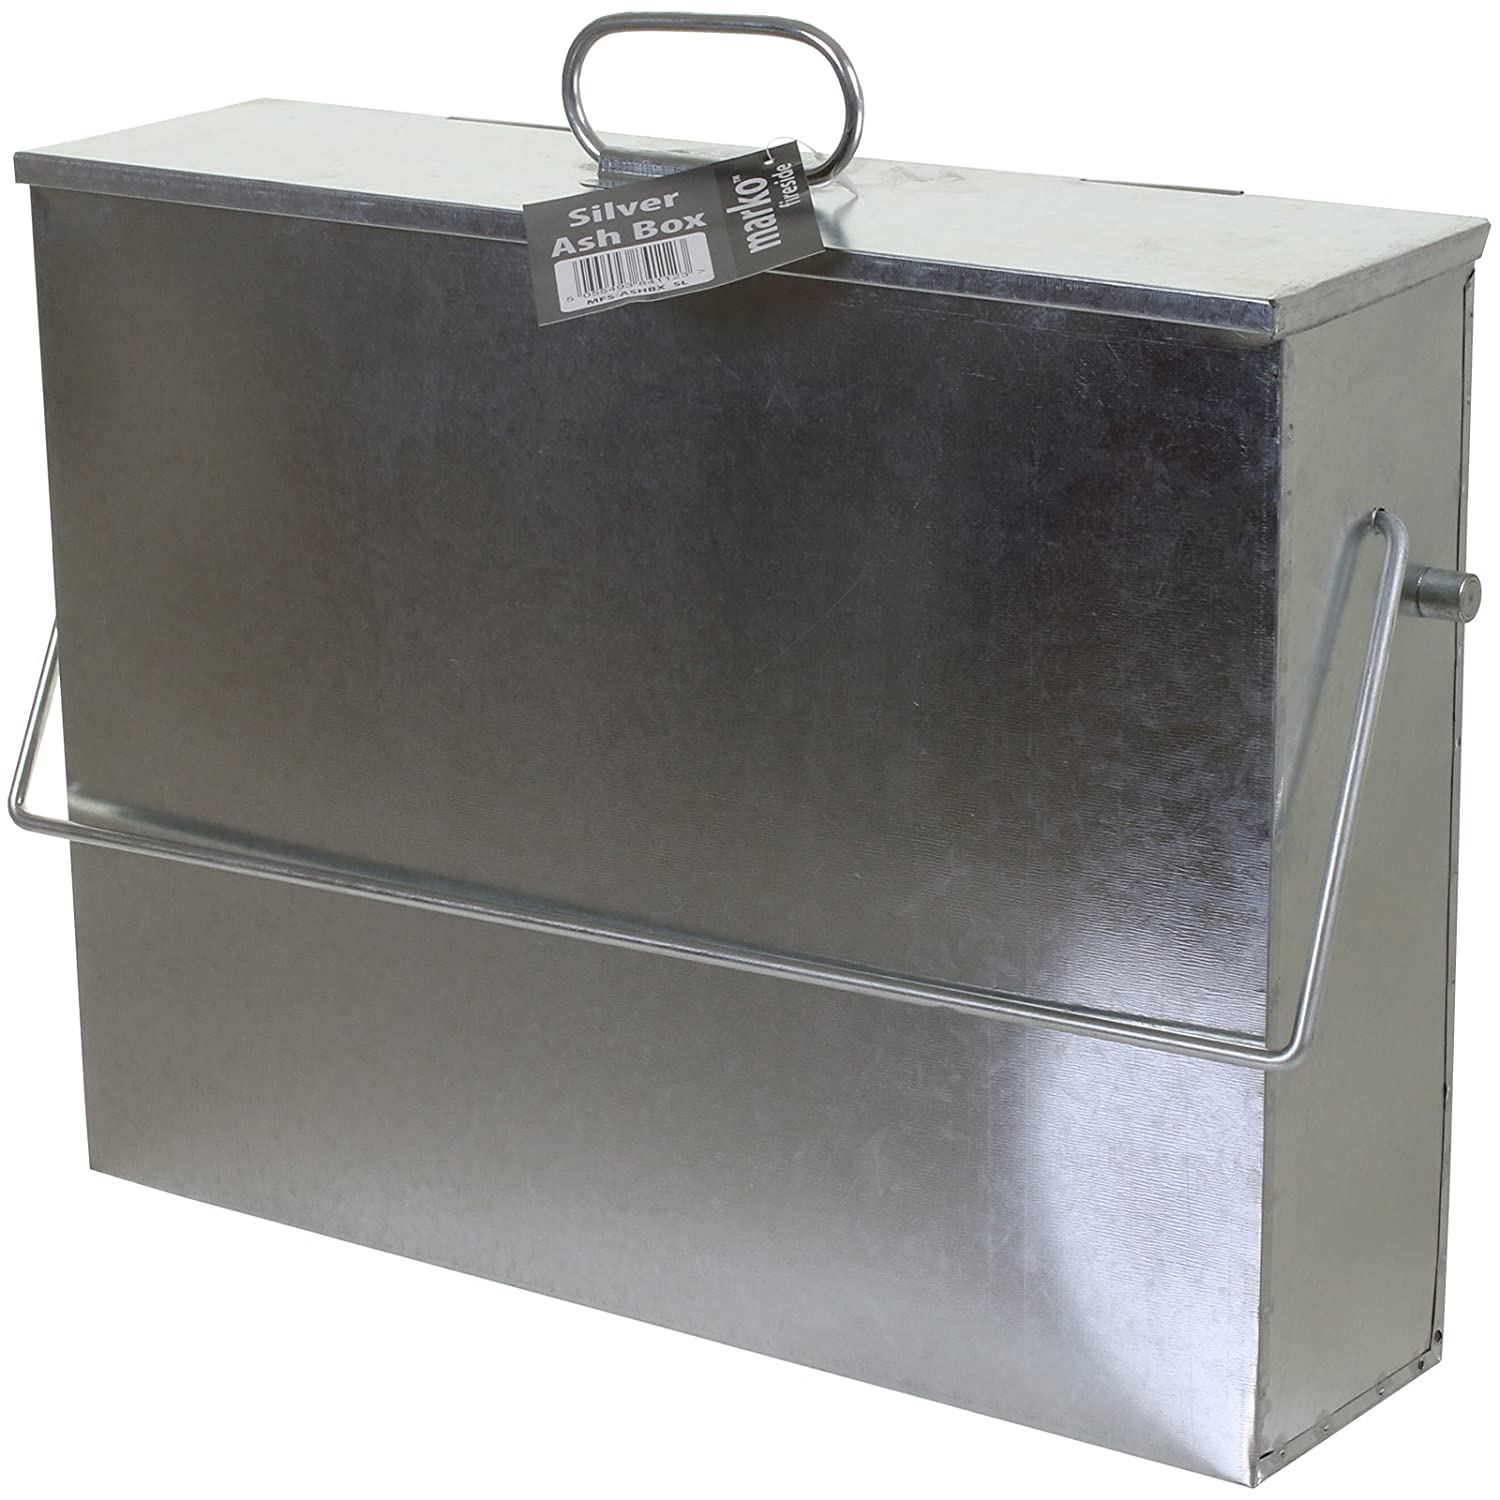 Marko Fireside Ash Carrier Galvanised Metal Hot Tidy Box Container Fireplace Pan Bucket Bin (Galvanised)